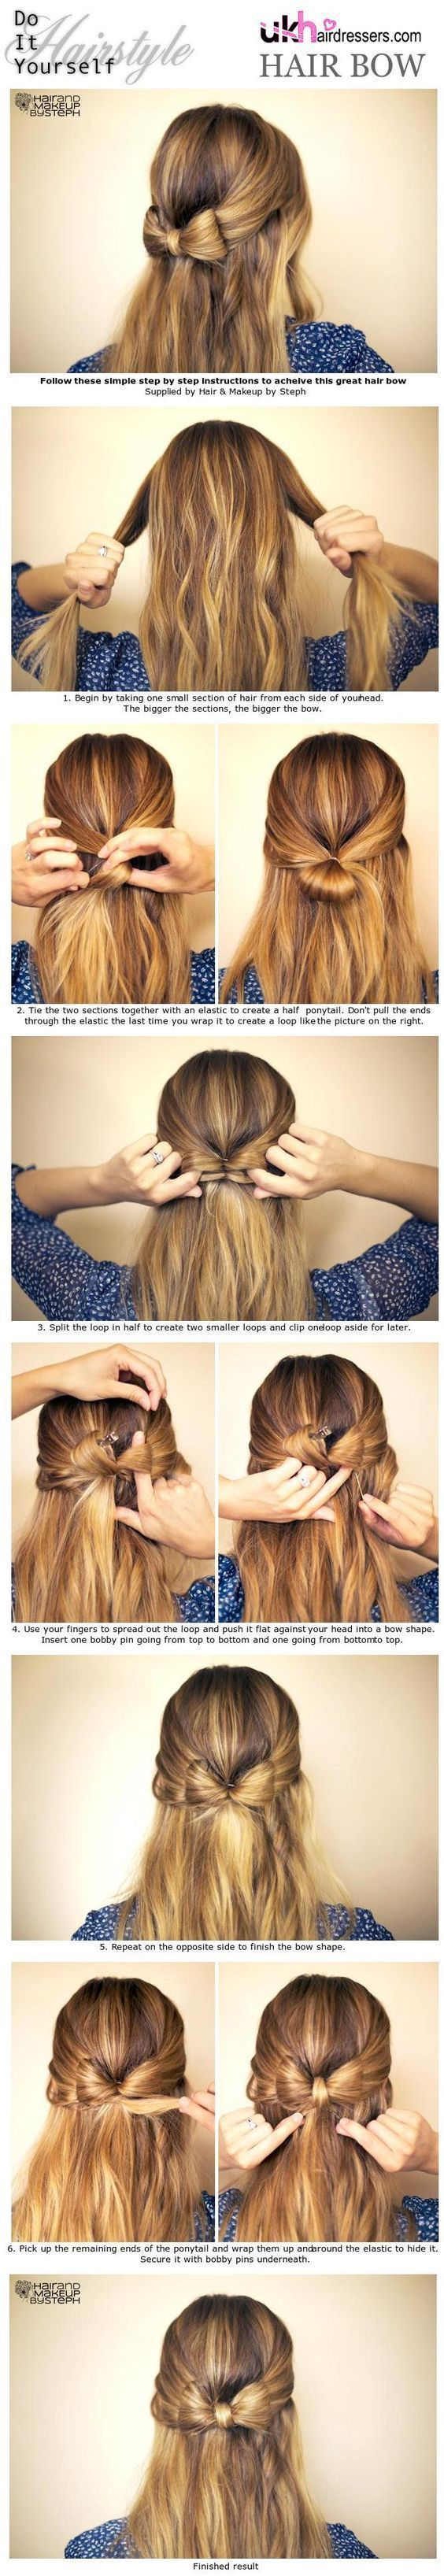 Cute and easy hairstyles for school for women pinterest